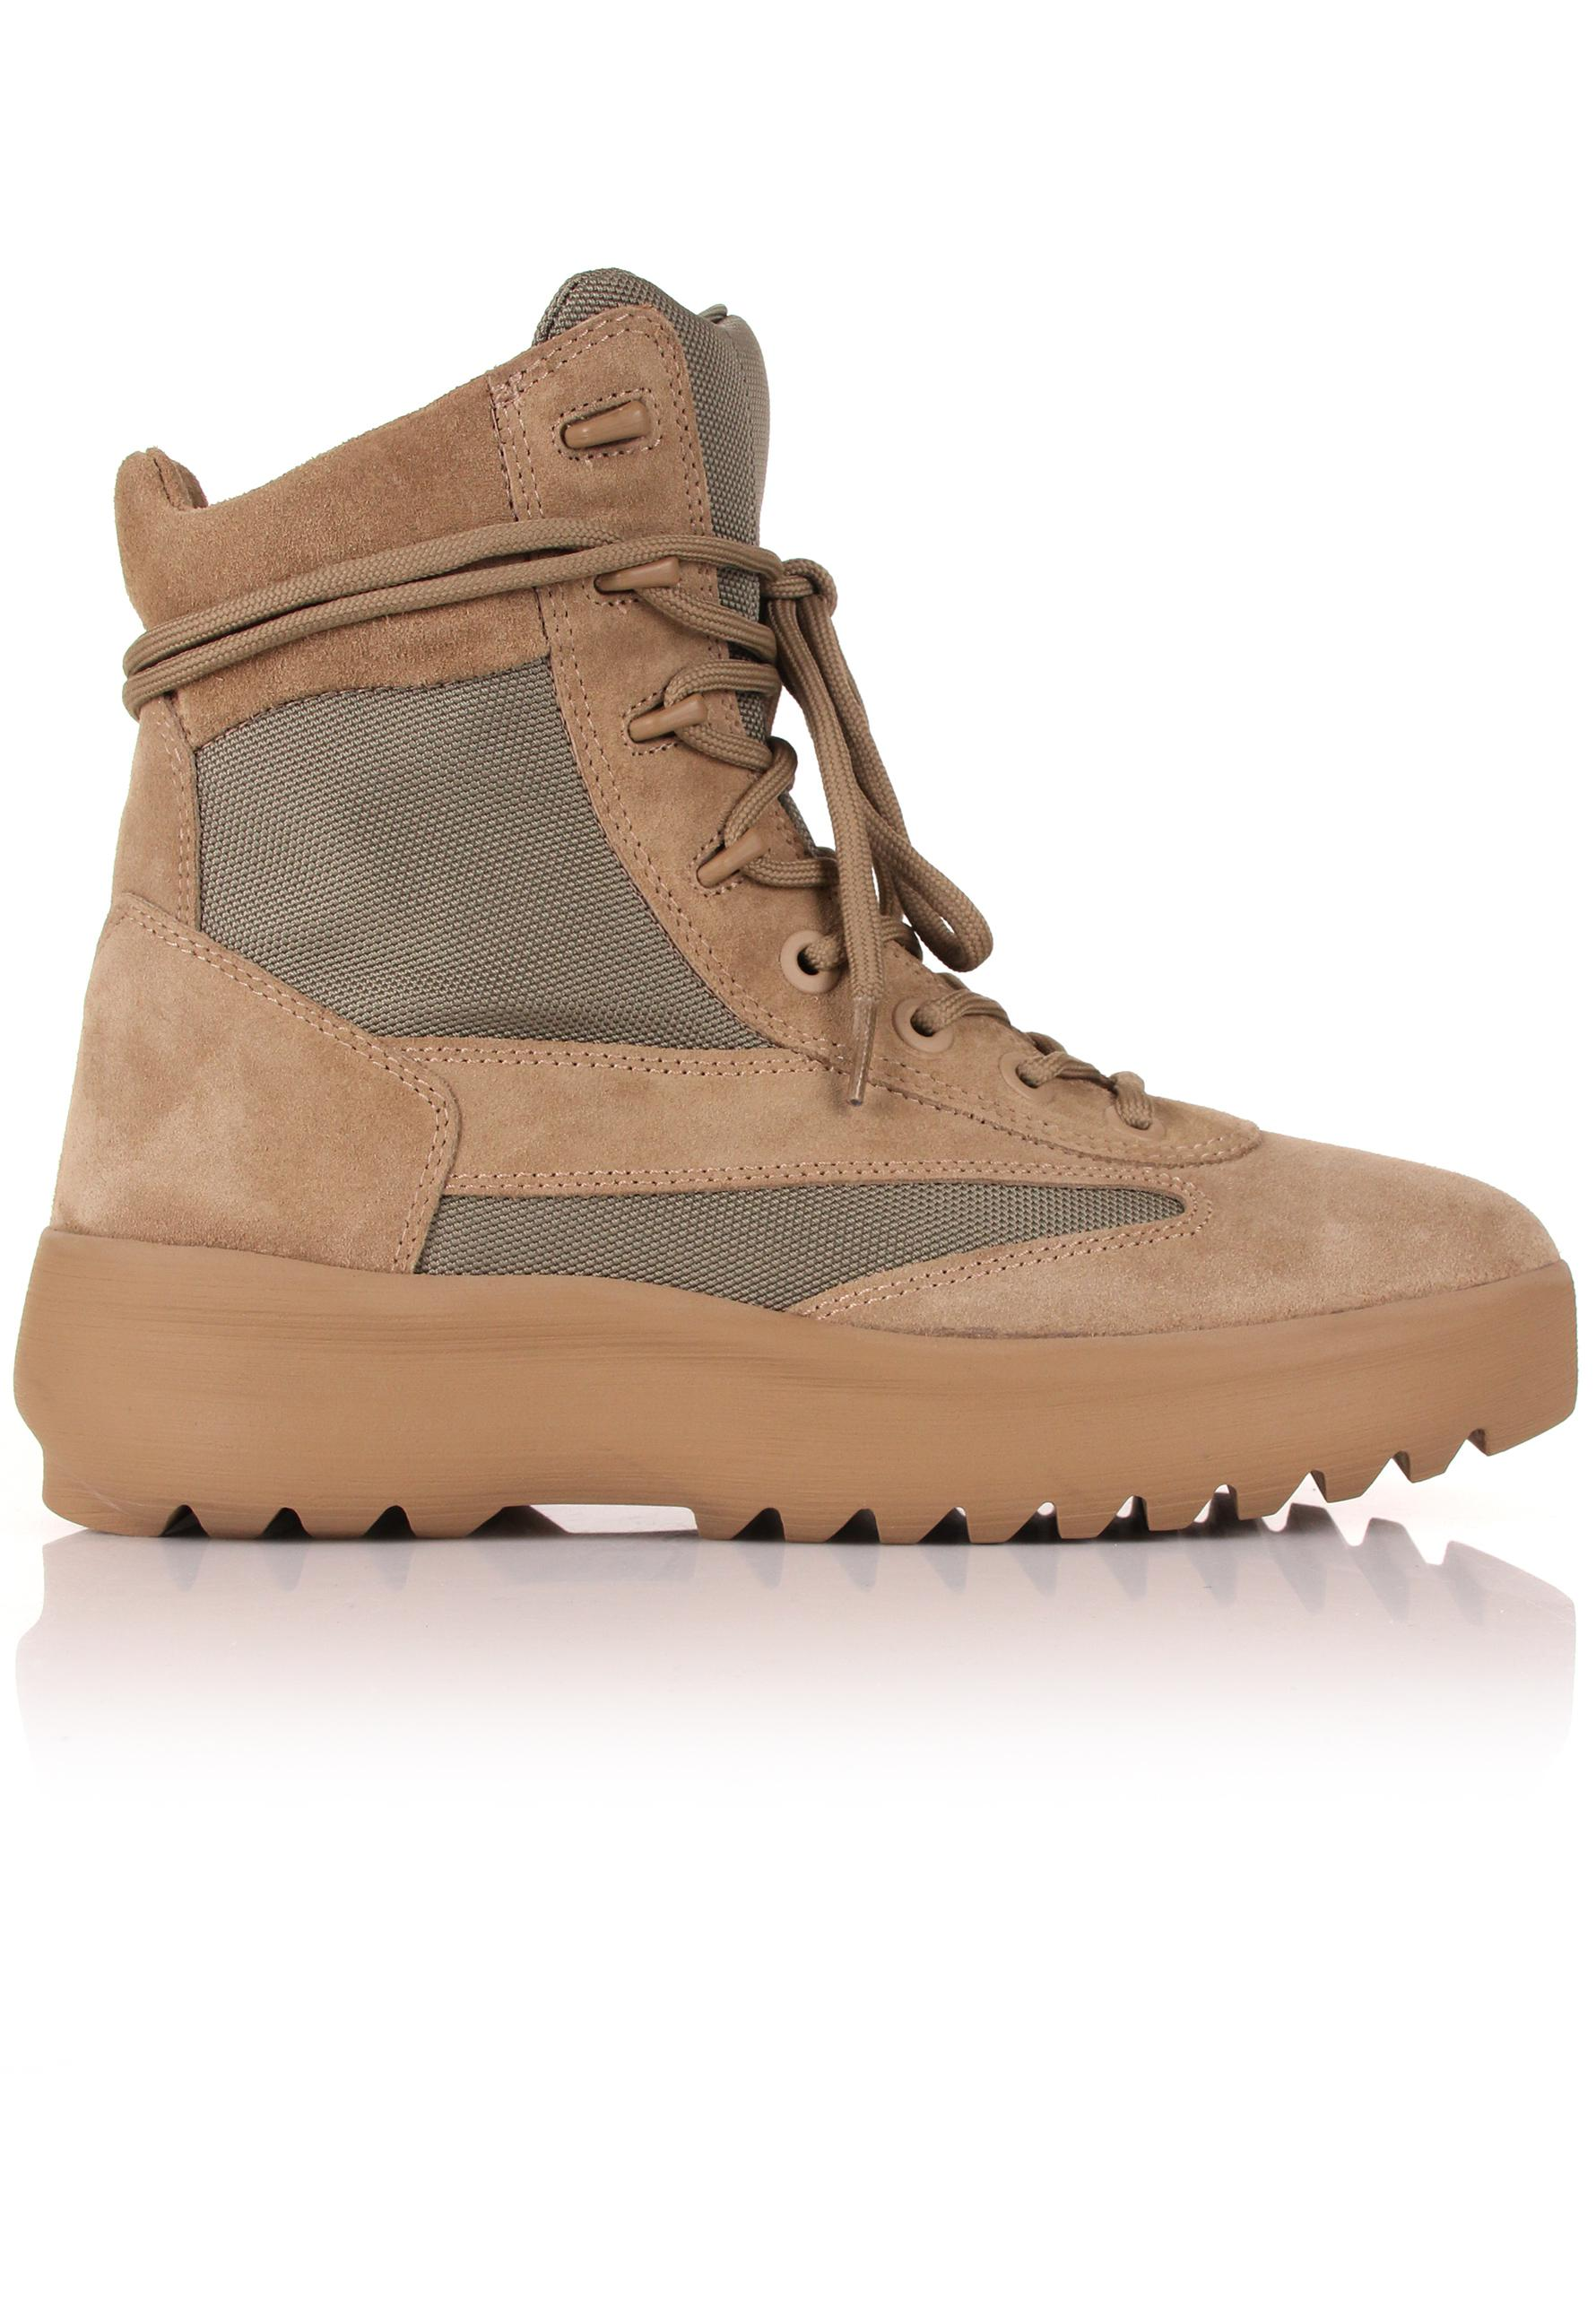 7f33405486f8d Yeezy Season 5 Military Boots Taupe in Brown for Men - Lyst